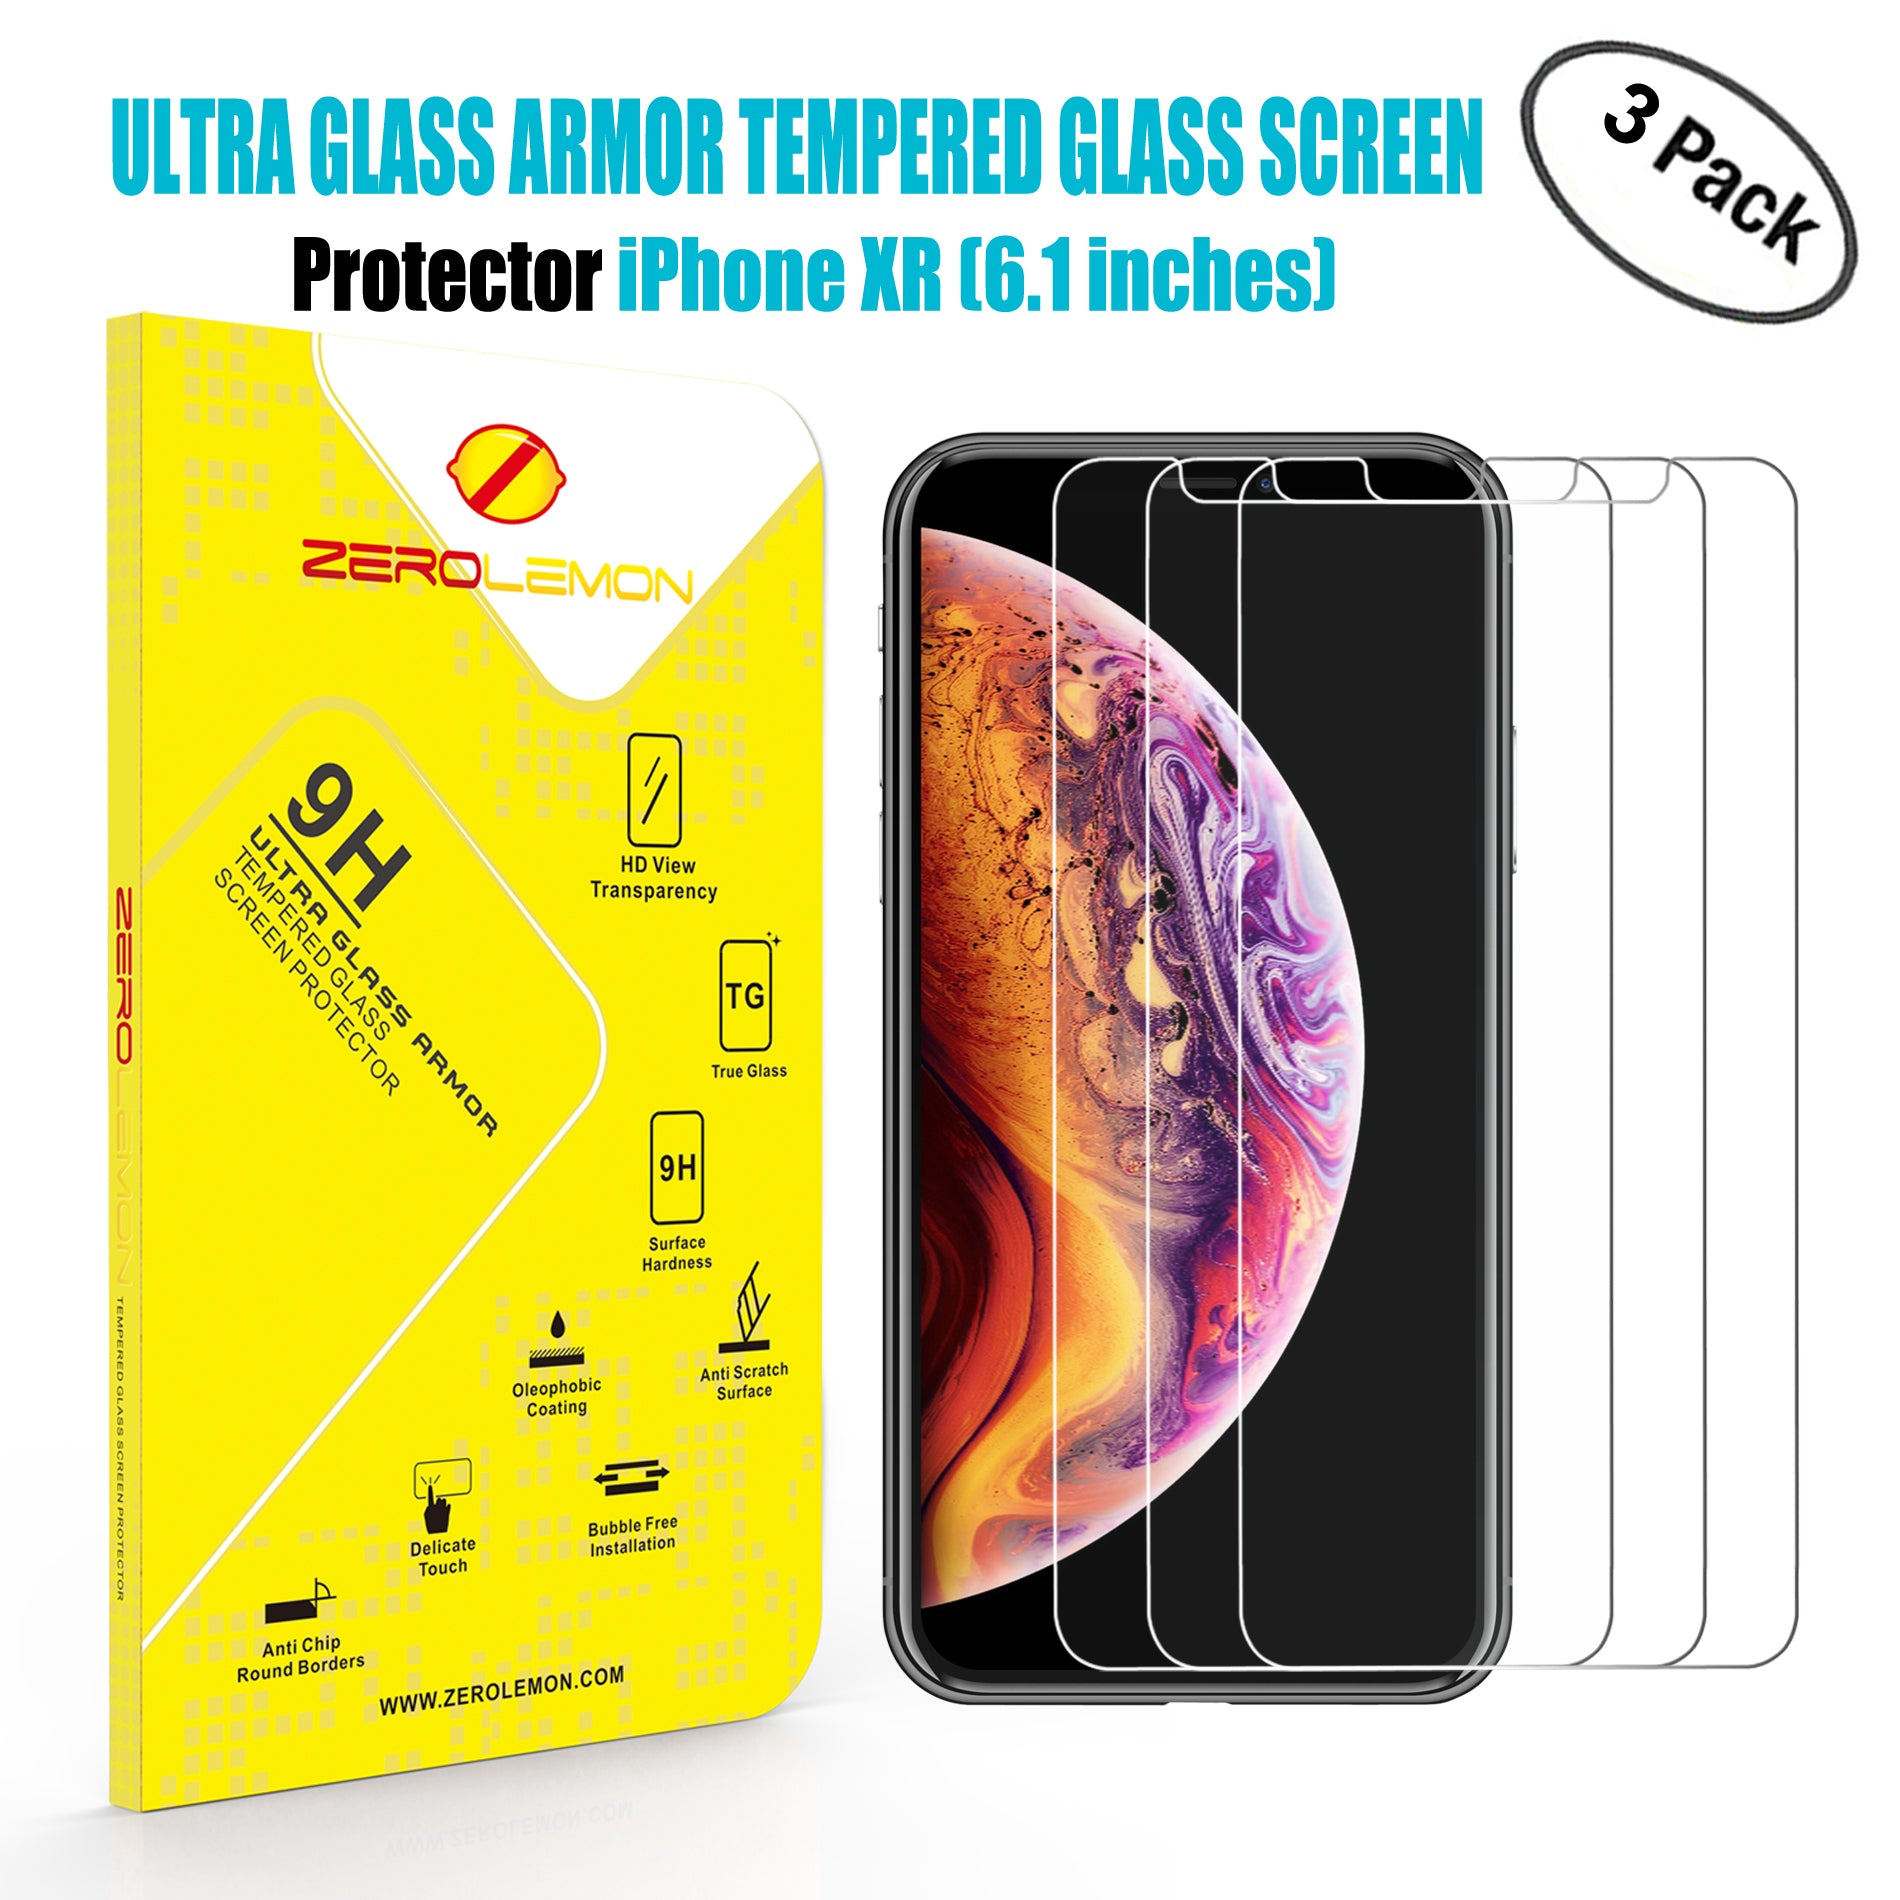 Iphone X 4000mah Battery Case Shipping To Us Only Headphone Jack Wiring Diagram View Someone In Michigan City United States Just Bought